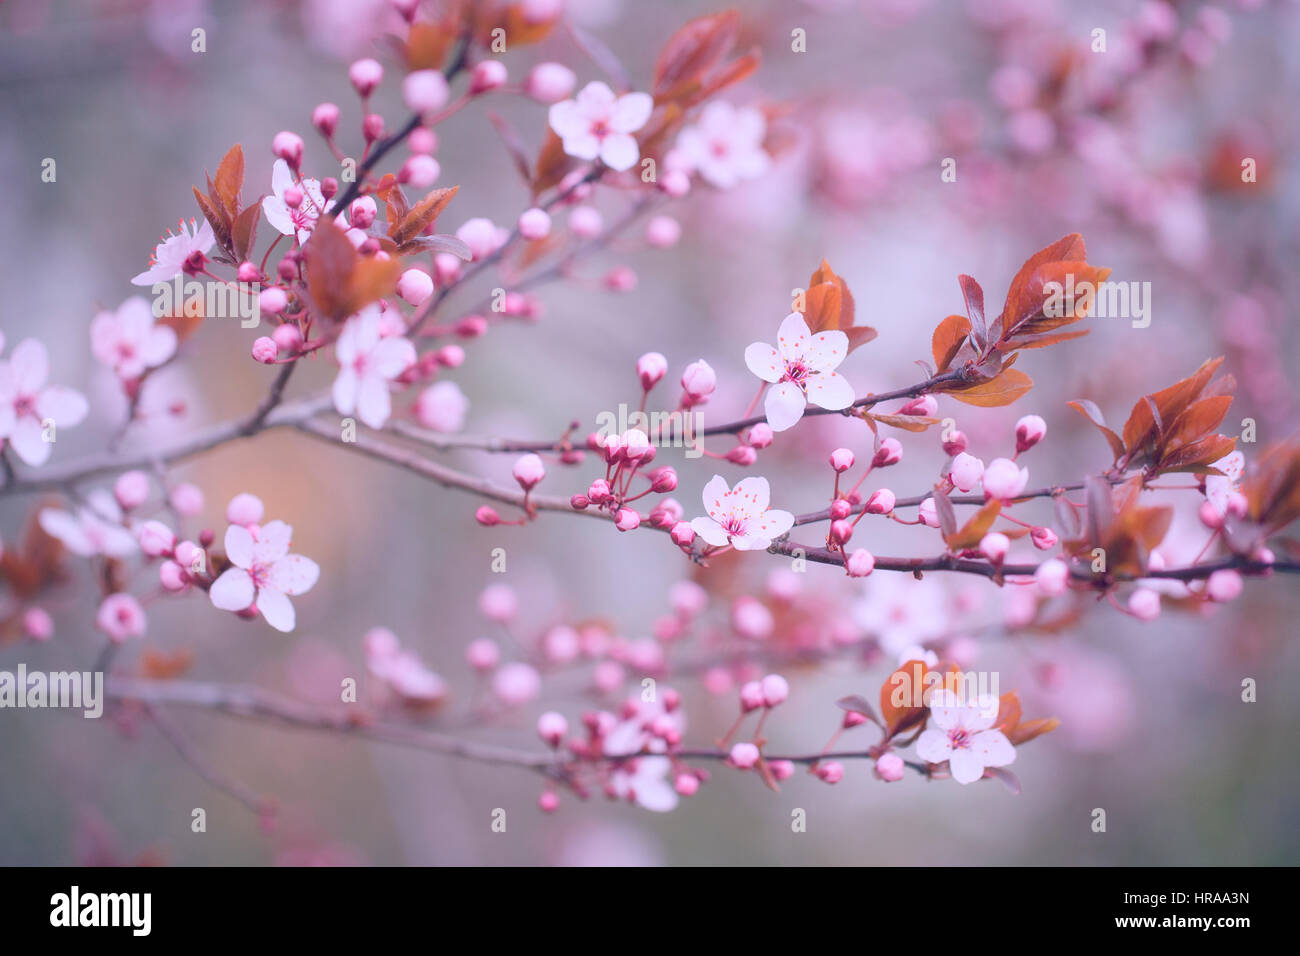 Tree flower blossoms - Stock Image